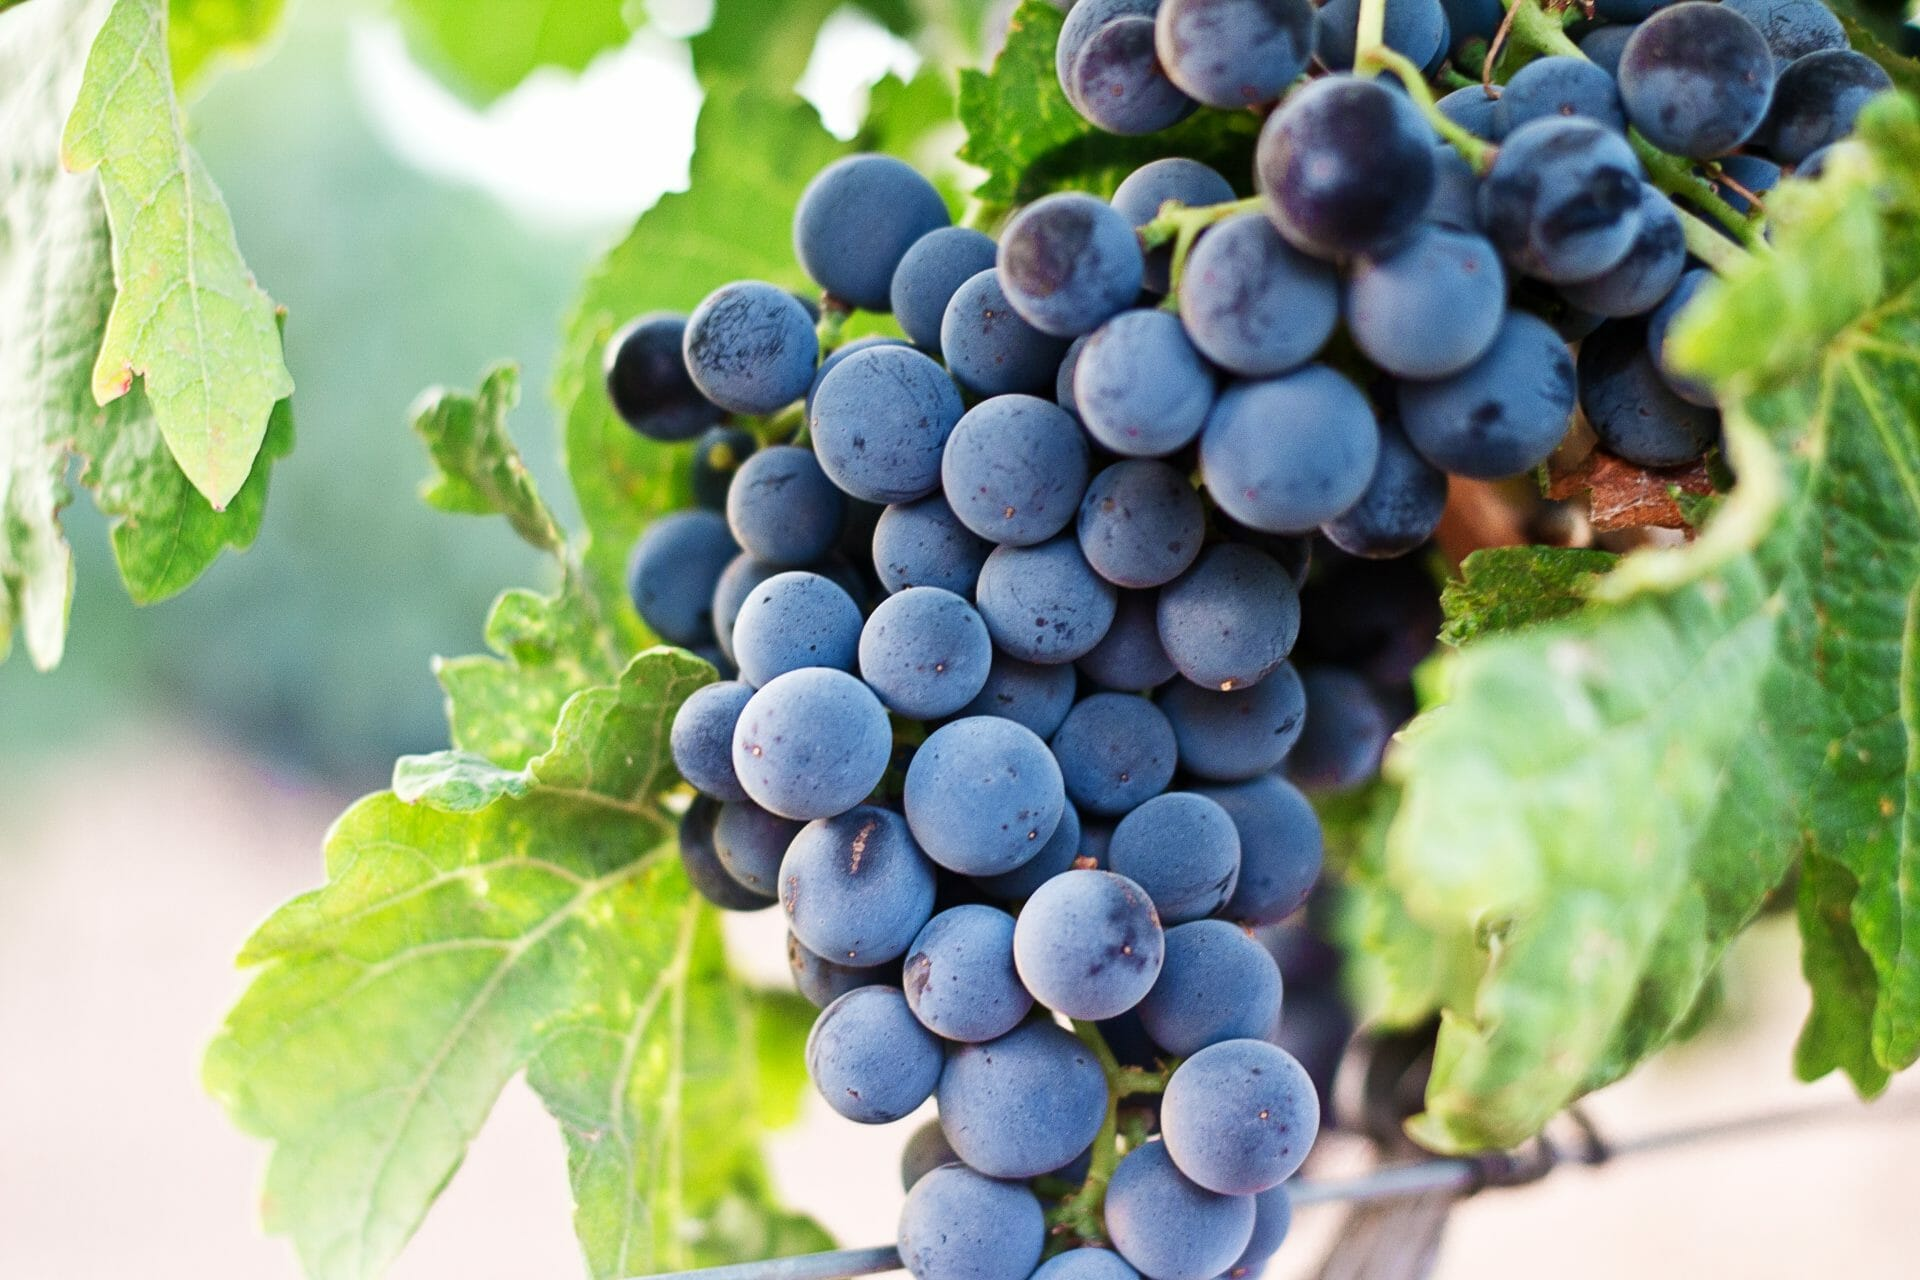 Picture of Grapes on a Vine for Real Estate News for Investors Podcast Episode #645